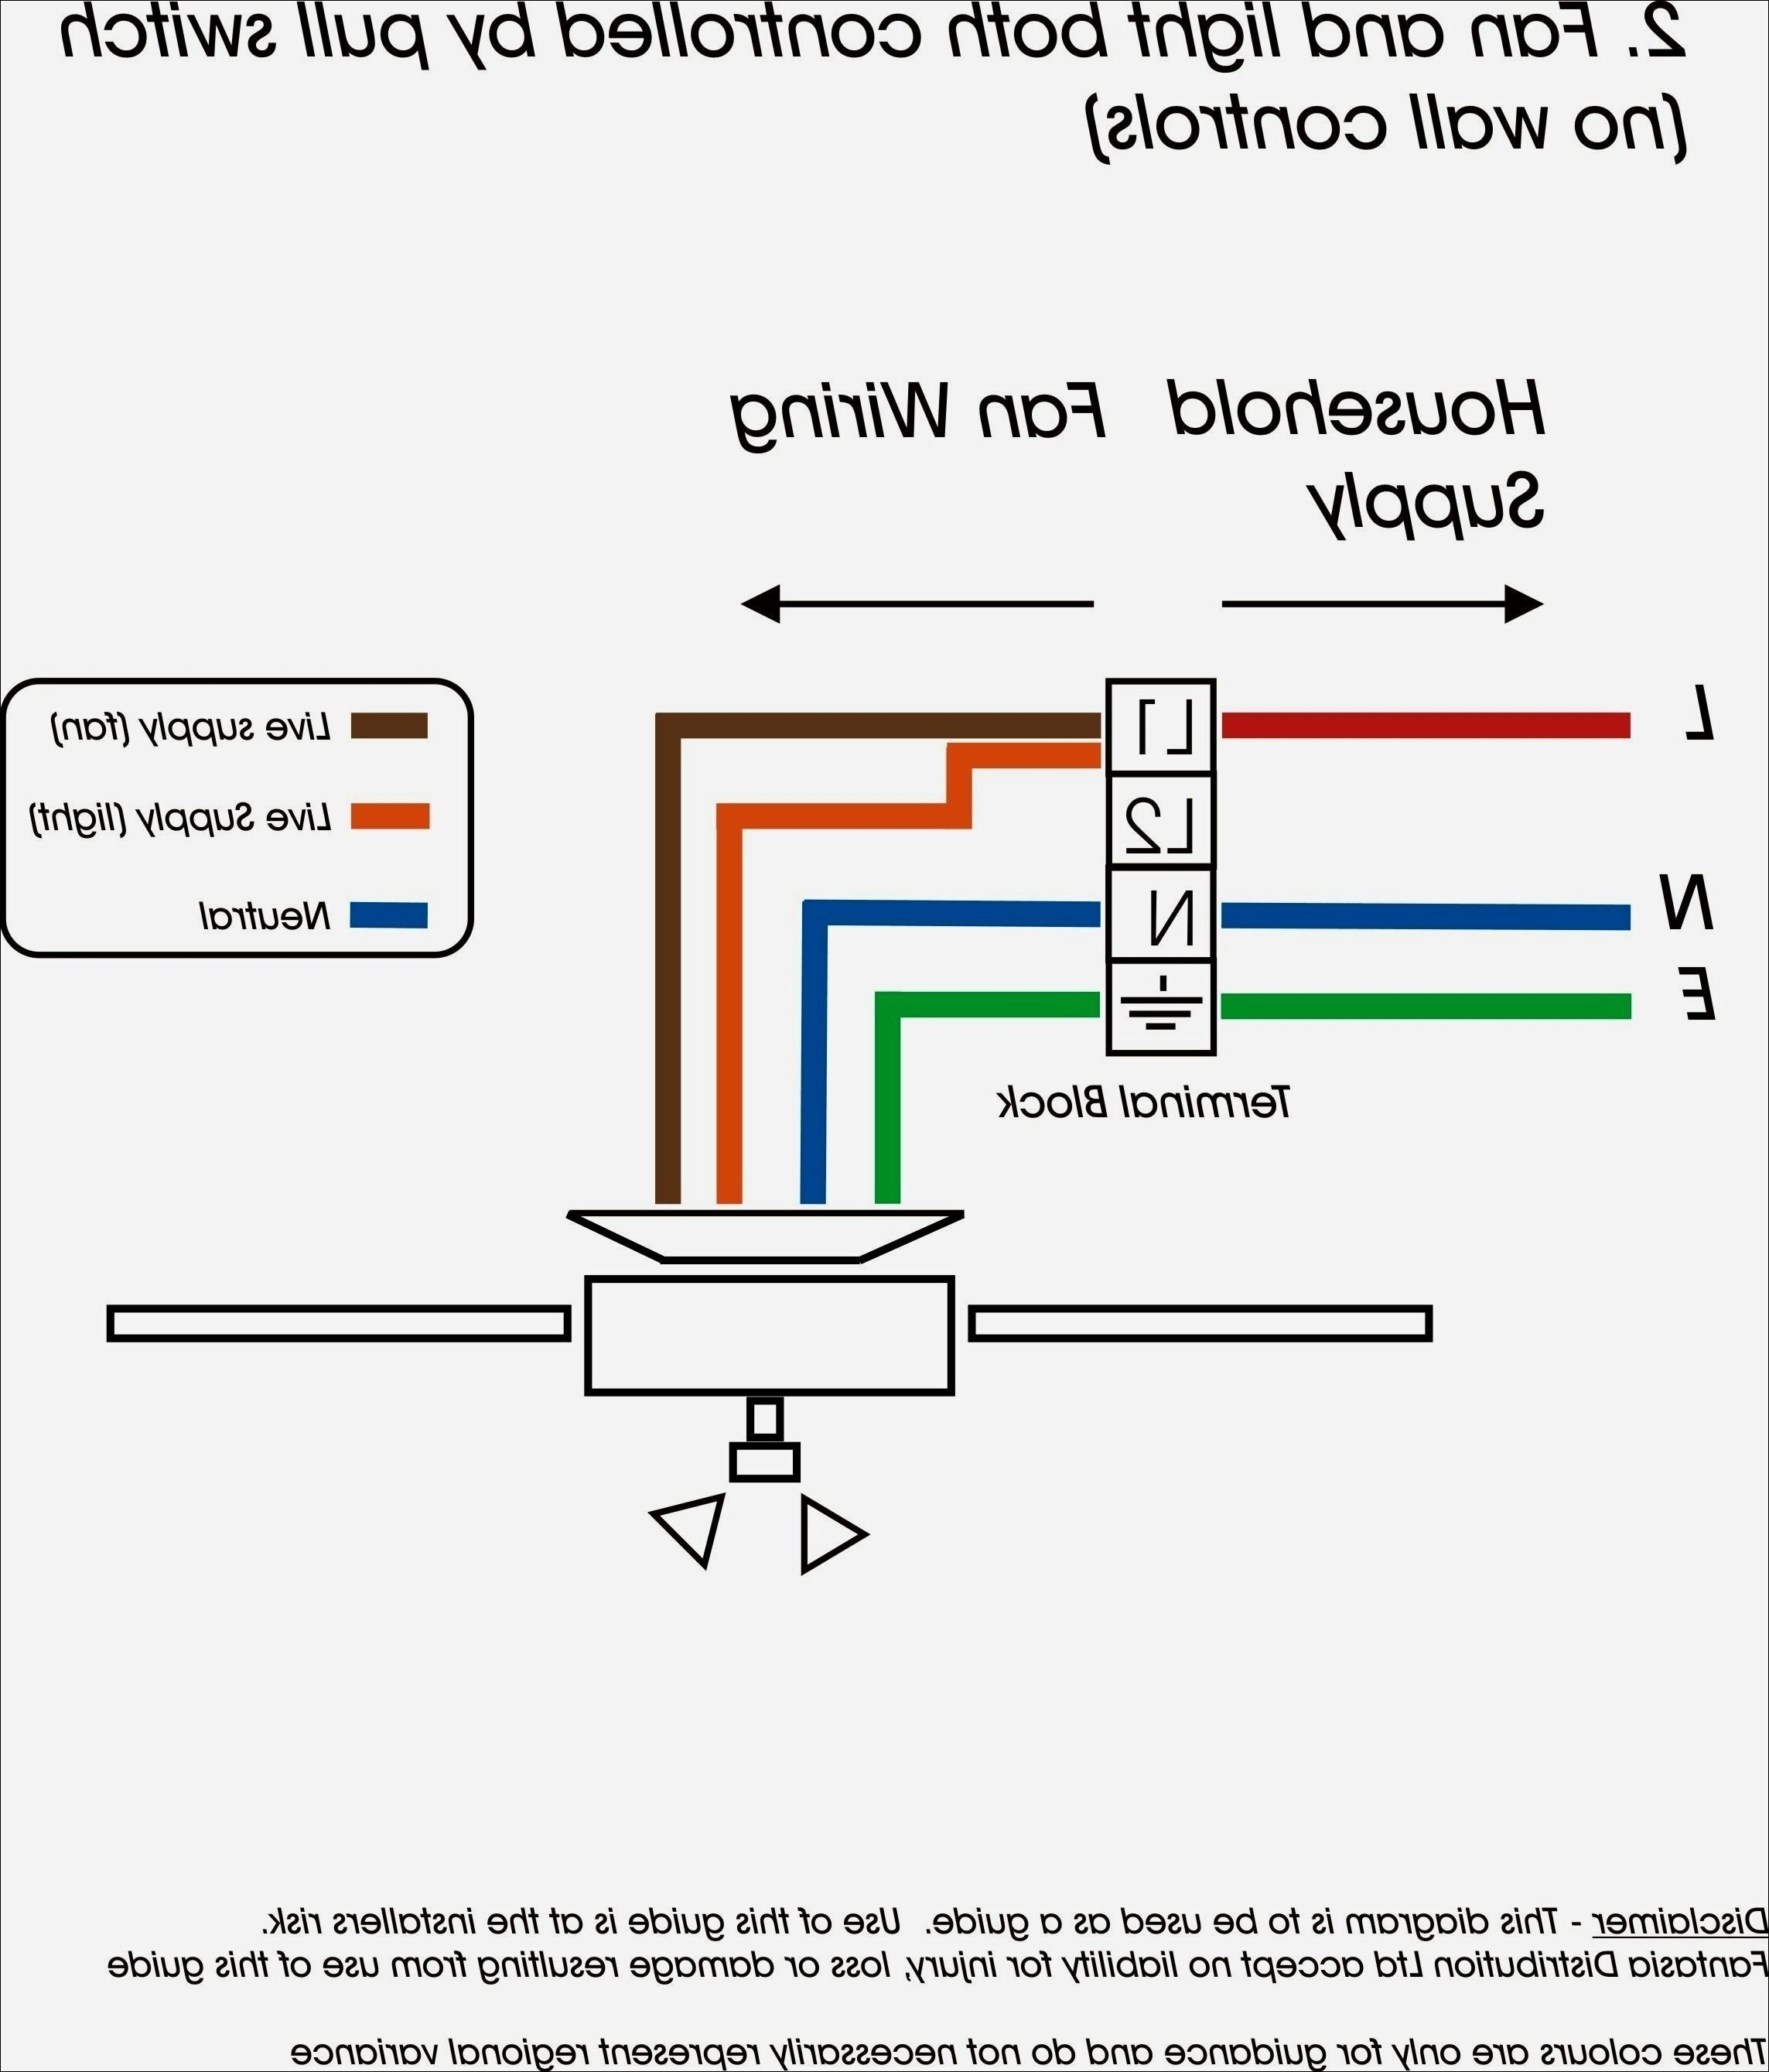 pressure switch wiring diagram Download-Wiring Diagram for A Bathroom Extractor Fan Awesome Wiring Diagram Bathroom Extractor Fan New Wiring Diagram 1-t